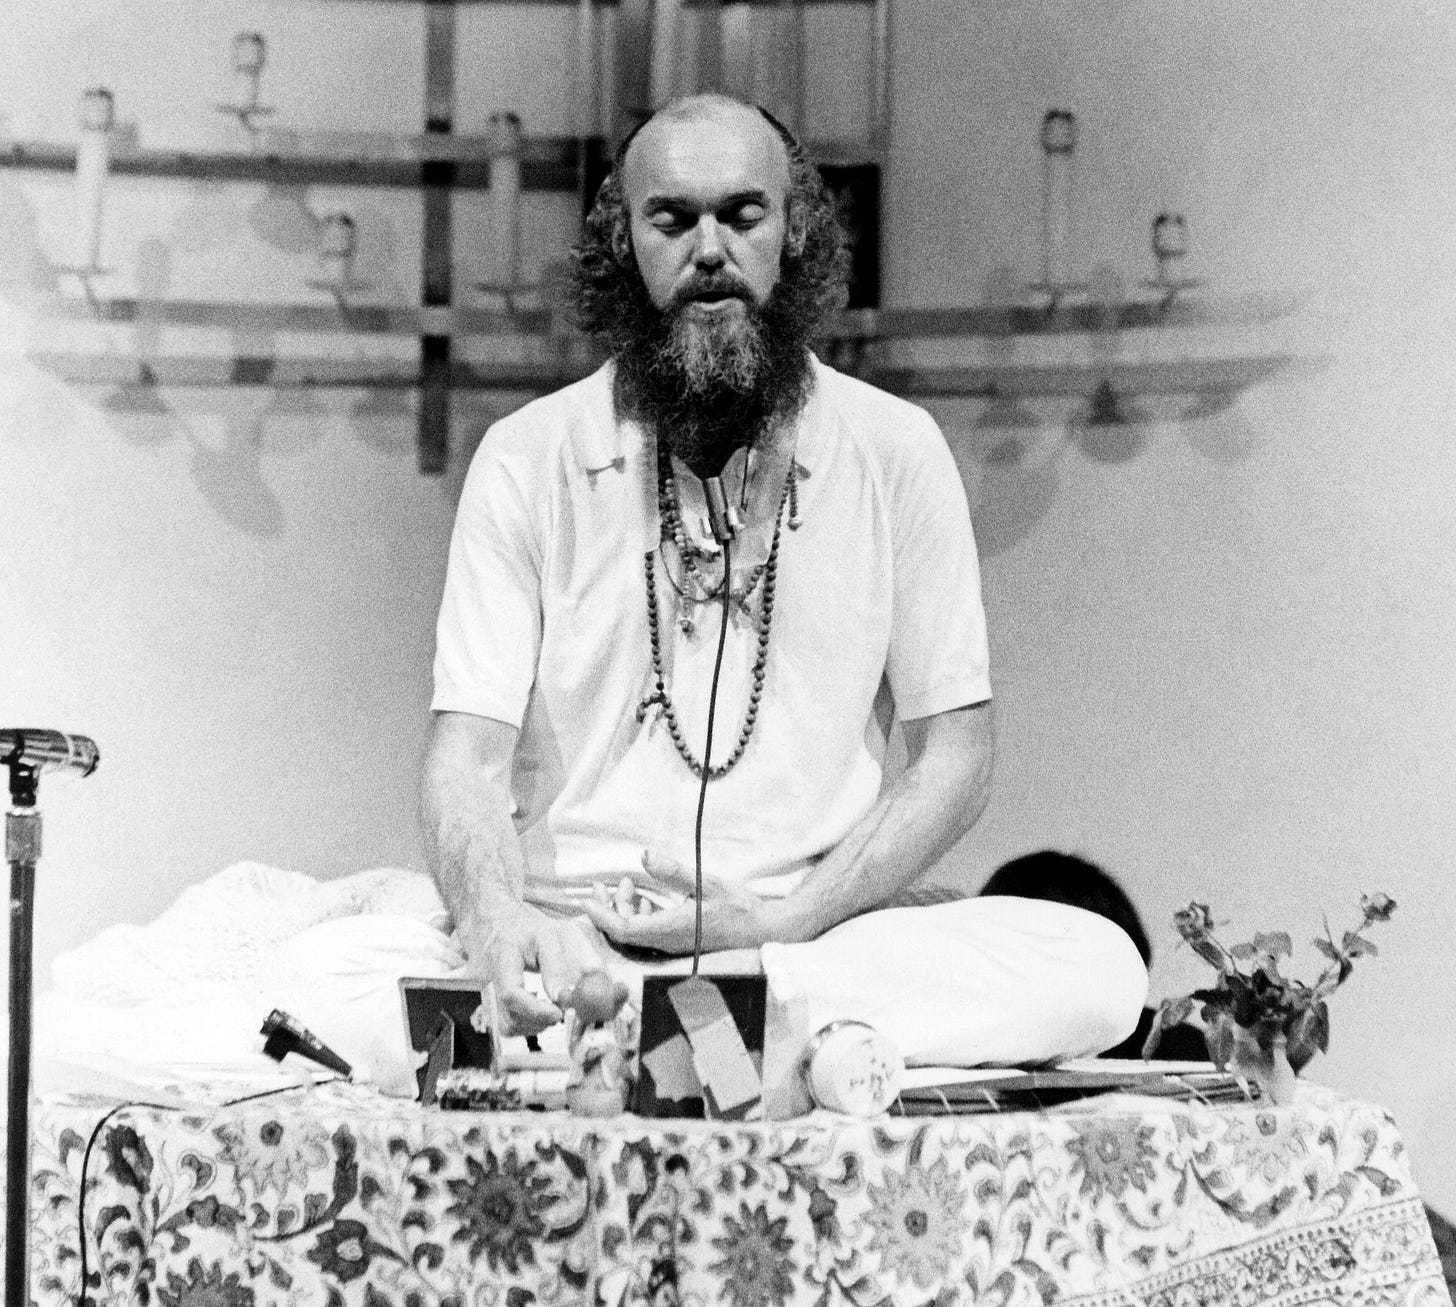 Baba Ram Dass, Proponent of LSD Turned New Age Guru, Dies at 88 - The New  York Times